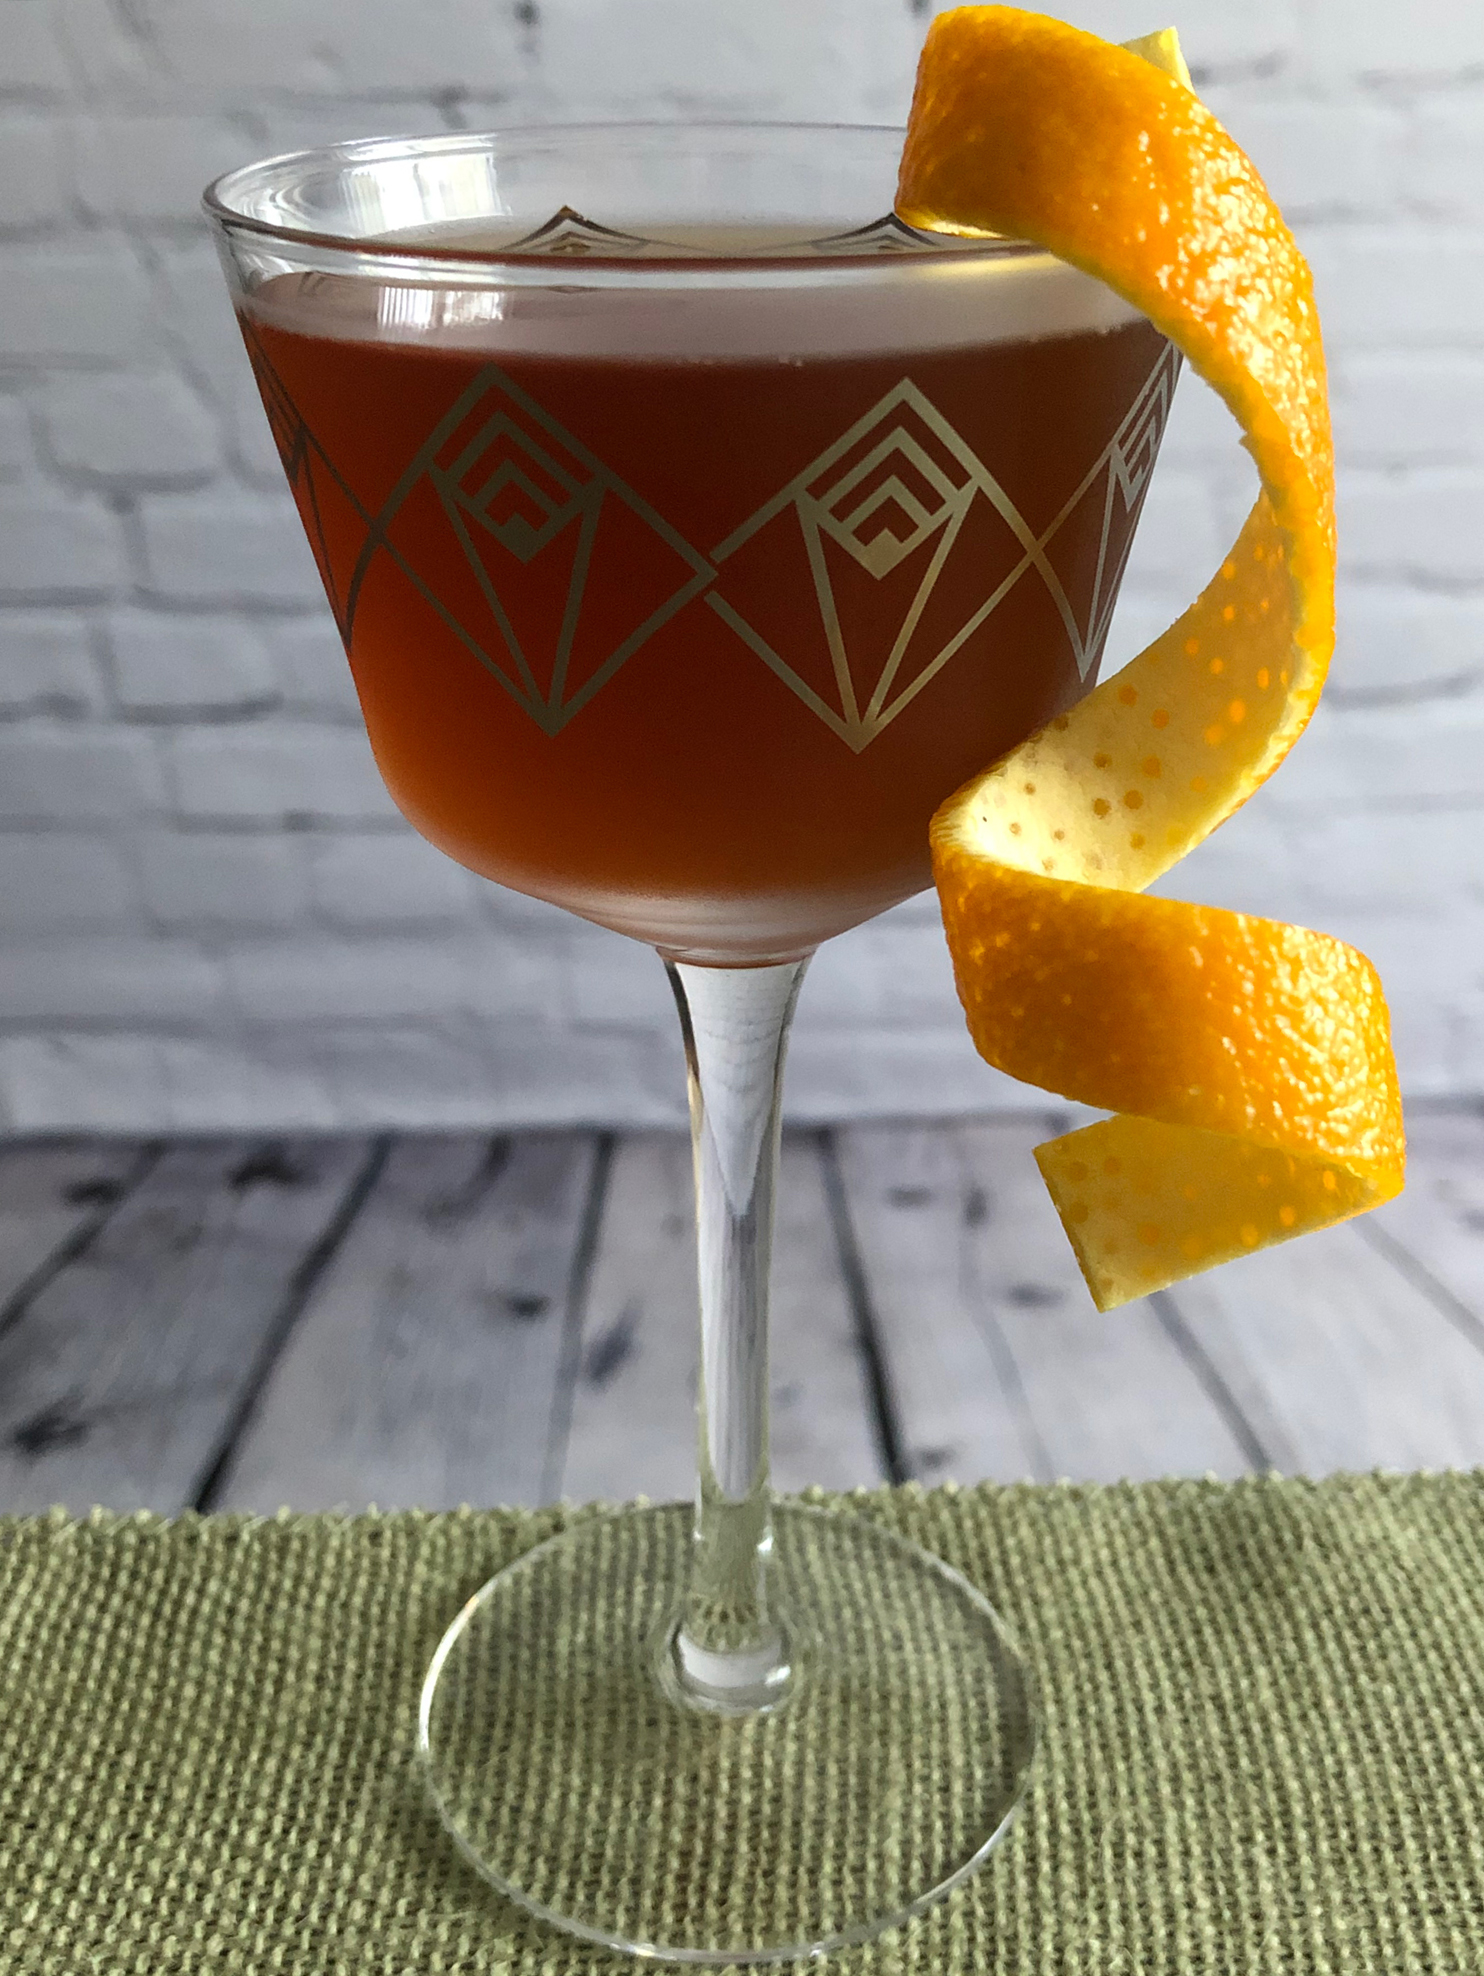 An example of the The Hammer, the mixed drink (cocktail) featuring Mattei Cap Corse Rouge Quinquina, bourbon whiskey, Kronan Swedish Punsch, and orange bitters; photo by Lee Edwards